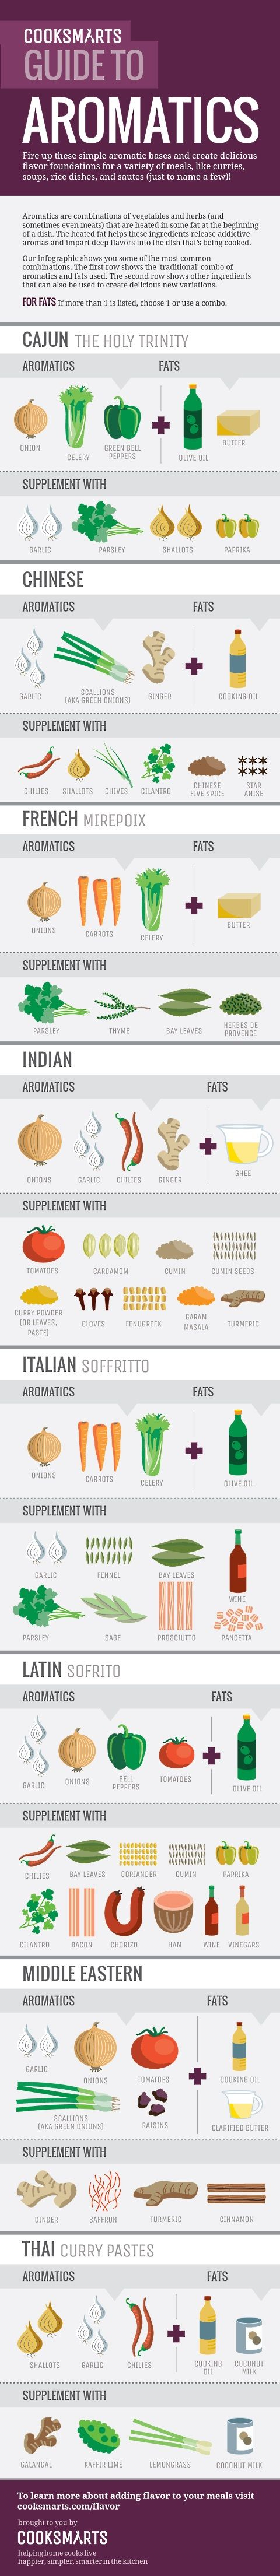 Aromatic veggies, fat, and spice combinations lay down a solid flavor base for all your favorite cuisines. This infographic is a great cooking reference.